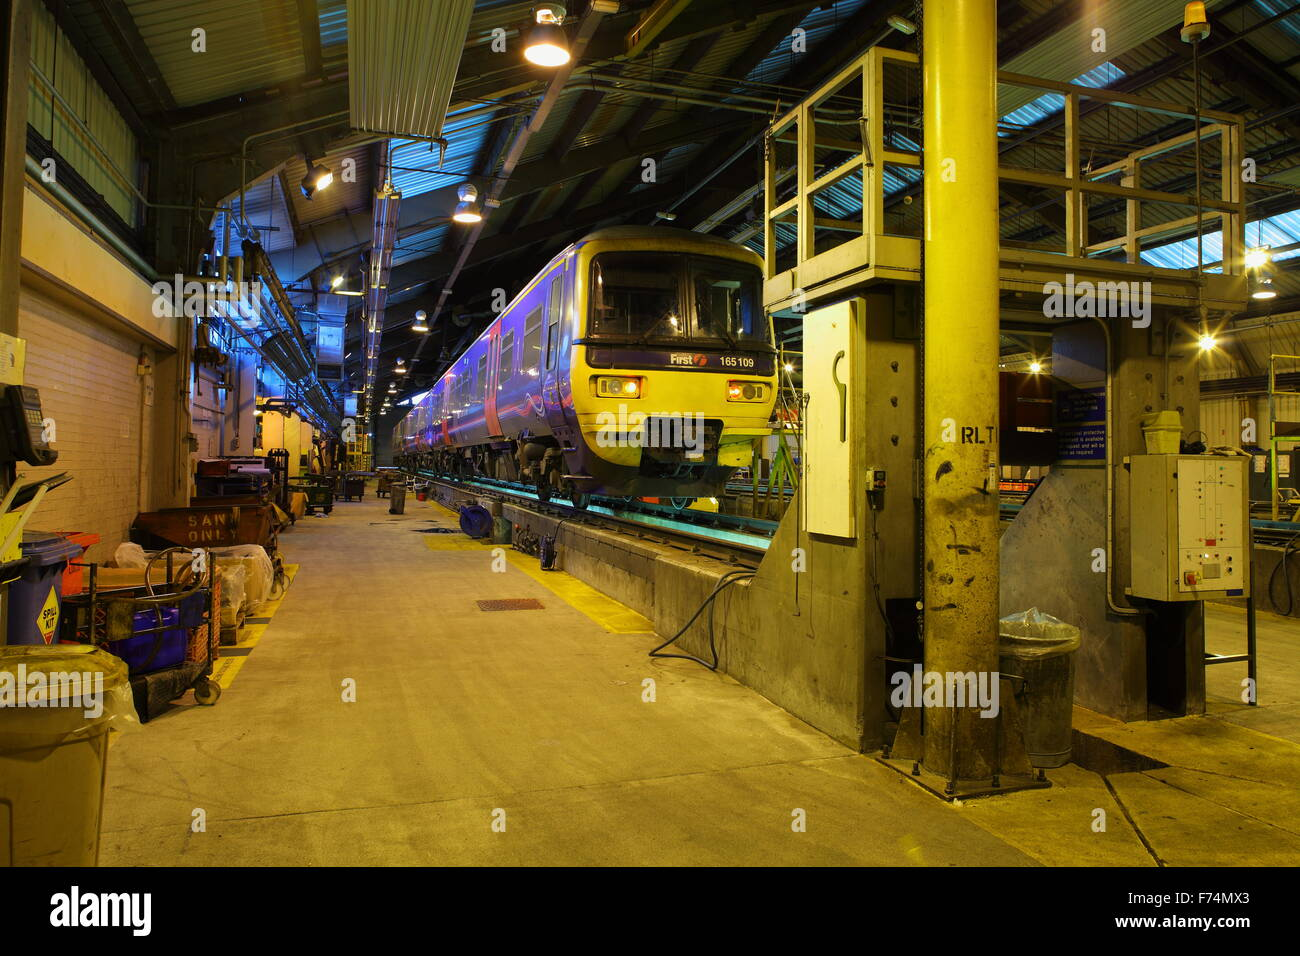 Looking down the side of a Diesel Multiple unit raised high on elevated rails awaiting servicing in a long shed - Stock Image